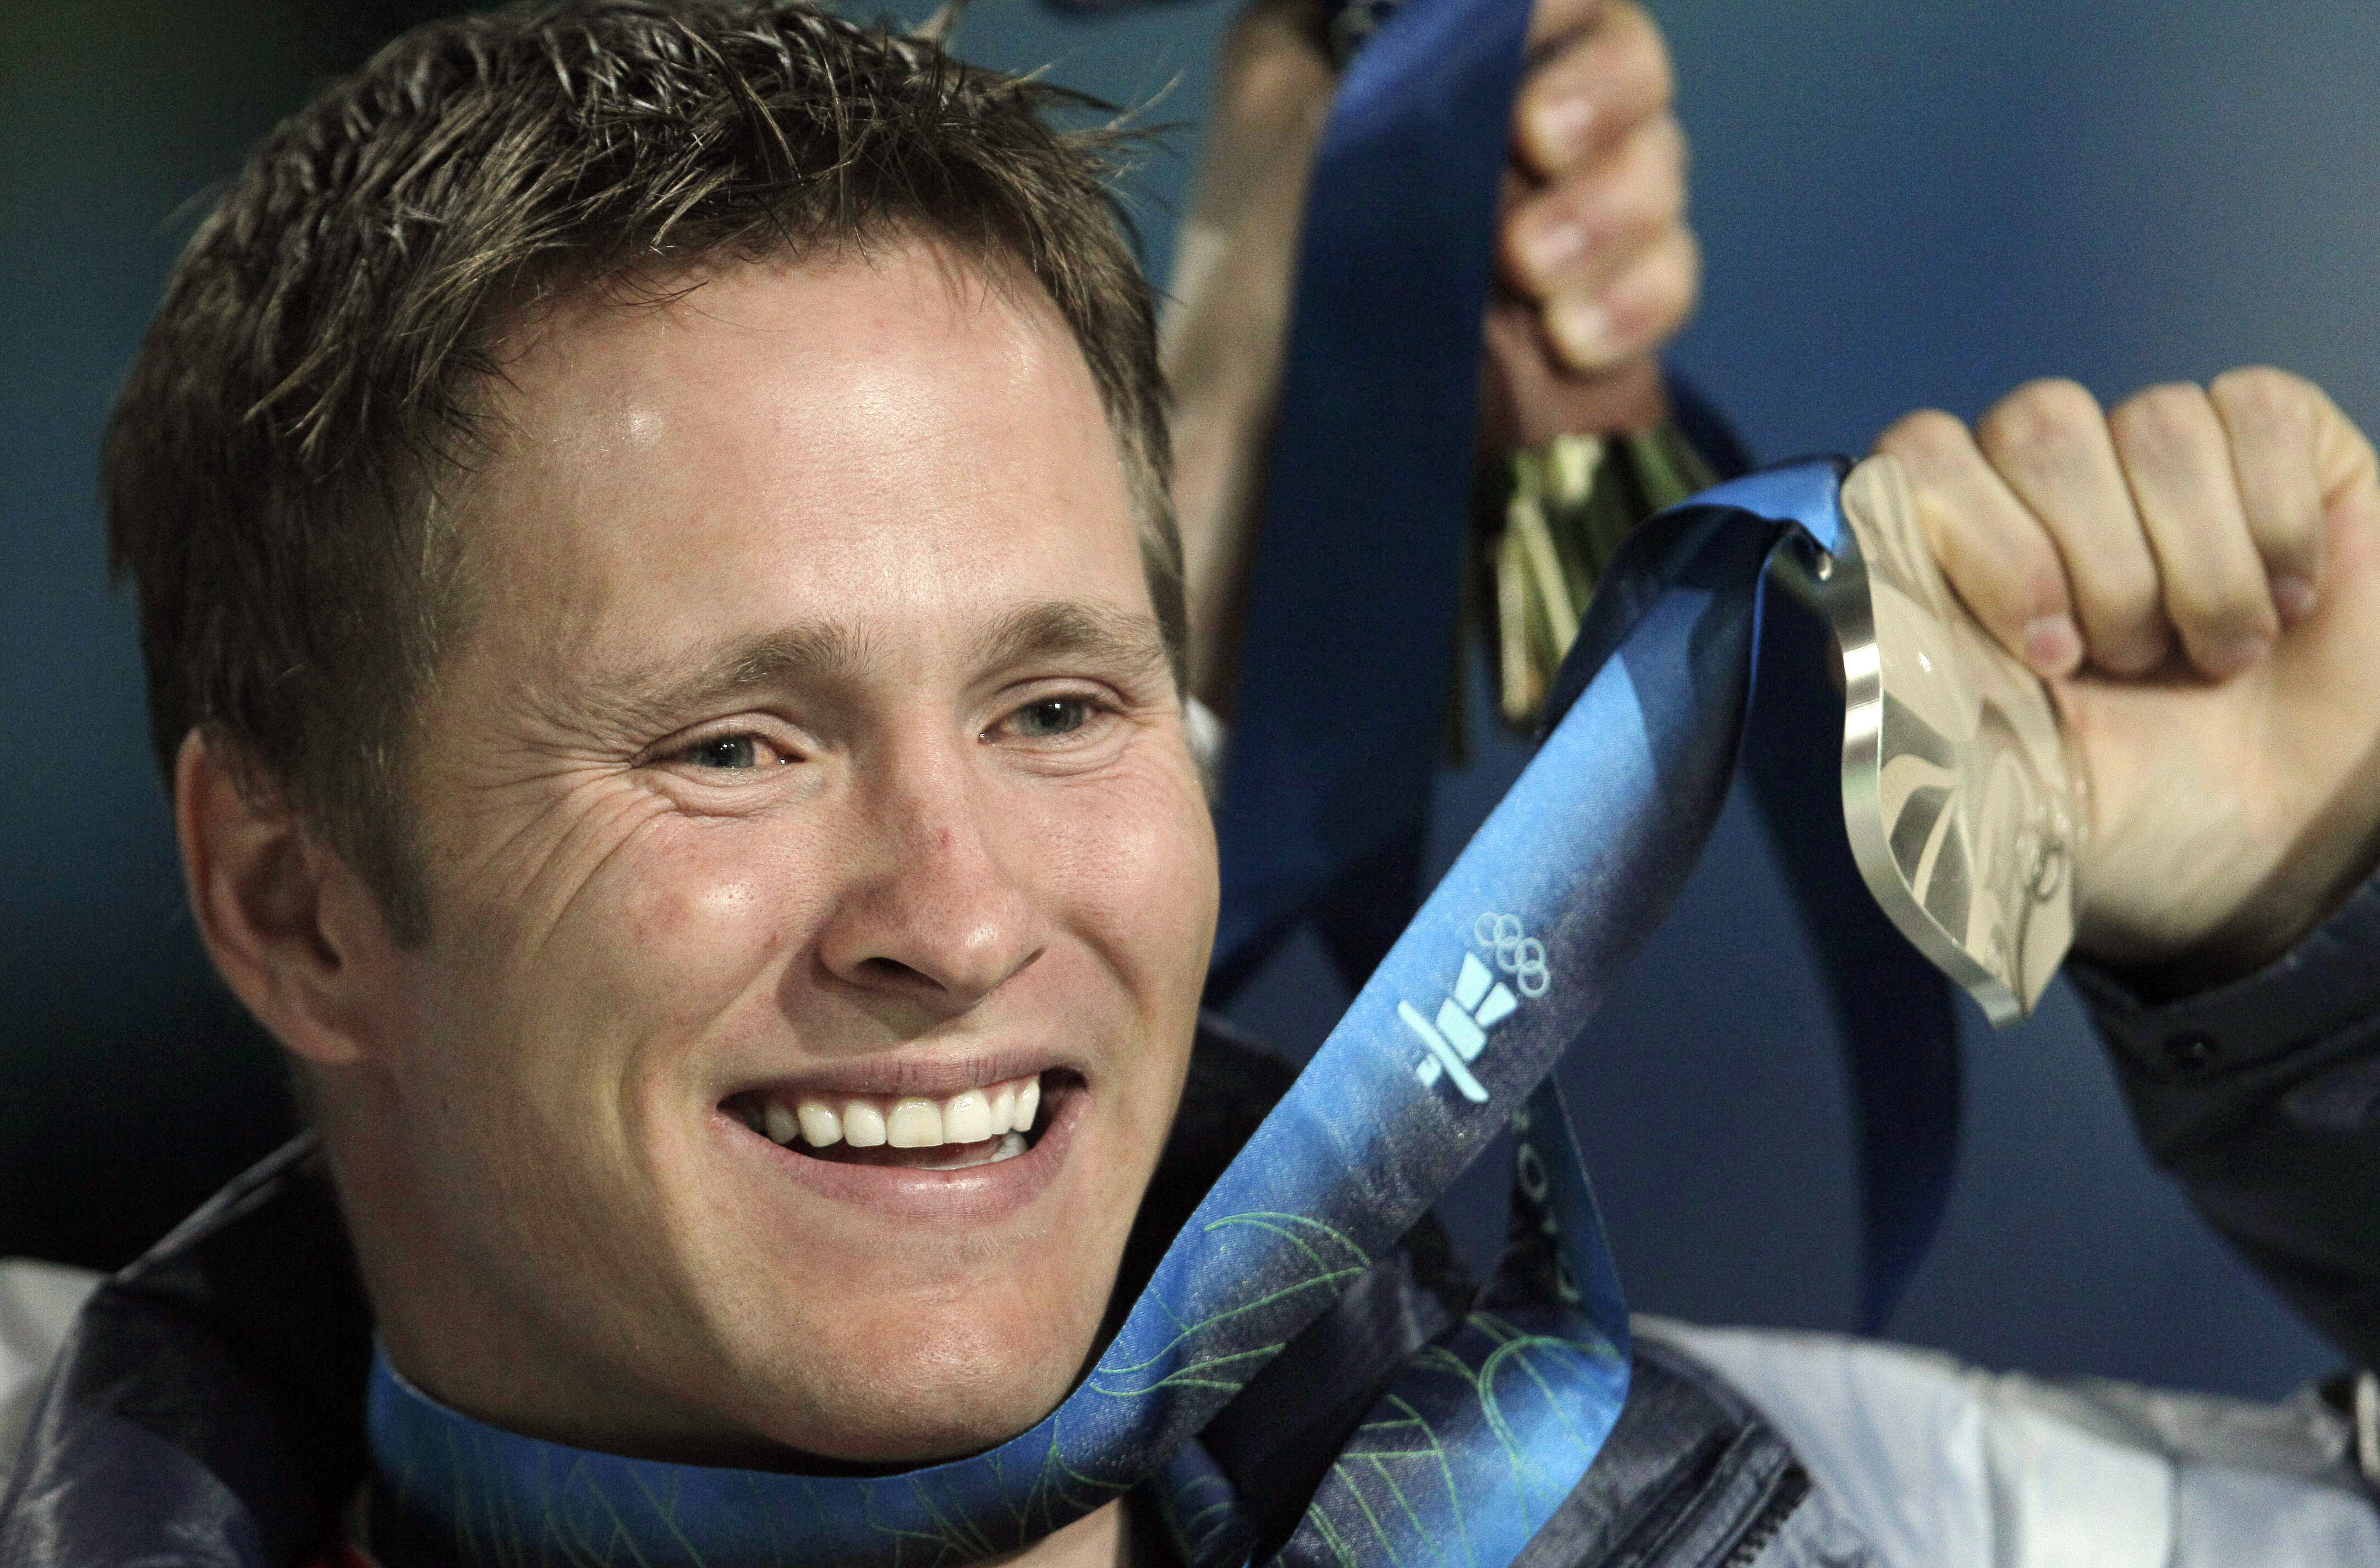 """FILE - In this Feb. 26, 2010, file photo, Jeret Peterson of the Boise, Idaho, holds his silver medal during the medals ceremony for the men's freestyle skiing aerials at the 2010 Winter Olympics in Vancouver, British Columbia. As aerialists get ready to compete at the Sochi Olympics on Monday, Feb. 17, 2014, Peterson will surely be missed. The sport's foremost boundary pusher, and the inventor of the three-flip, five-twisting """"Hurricane"""" jump, took his life in 2011. (AP Photo/Gerry Broome, File)"""